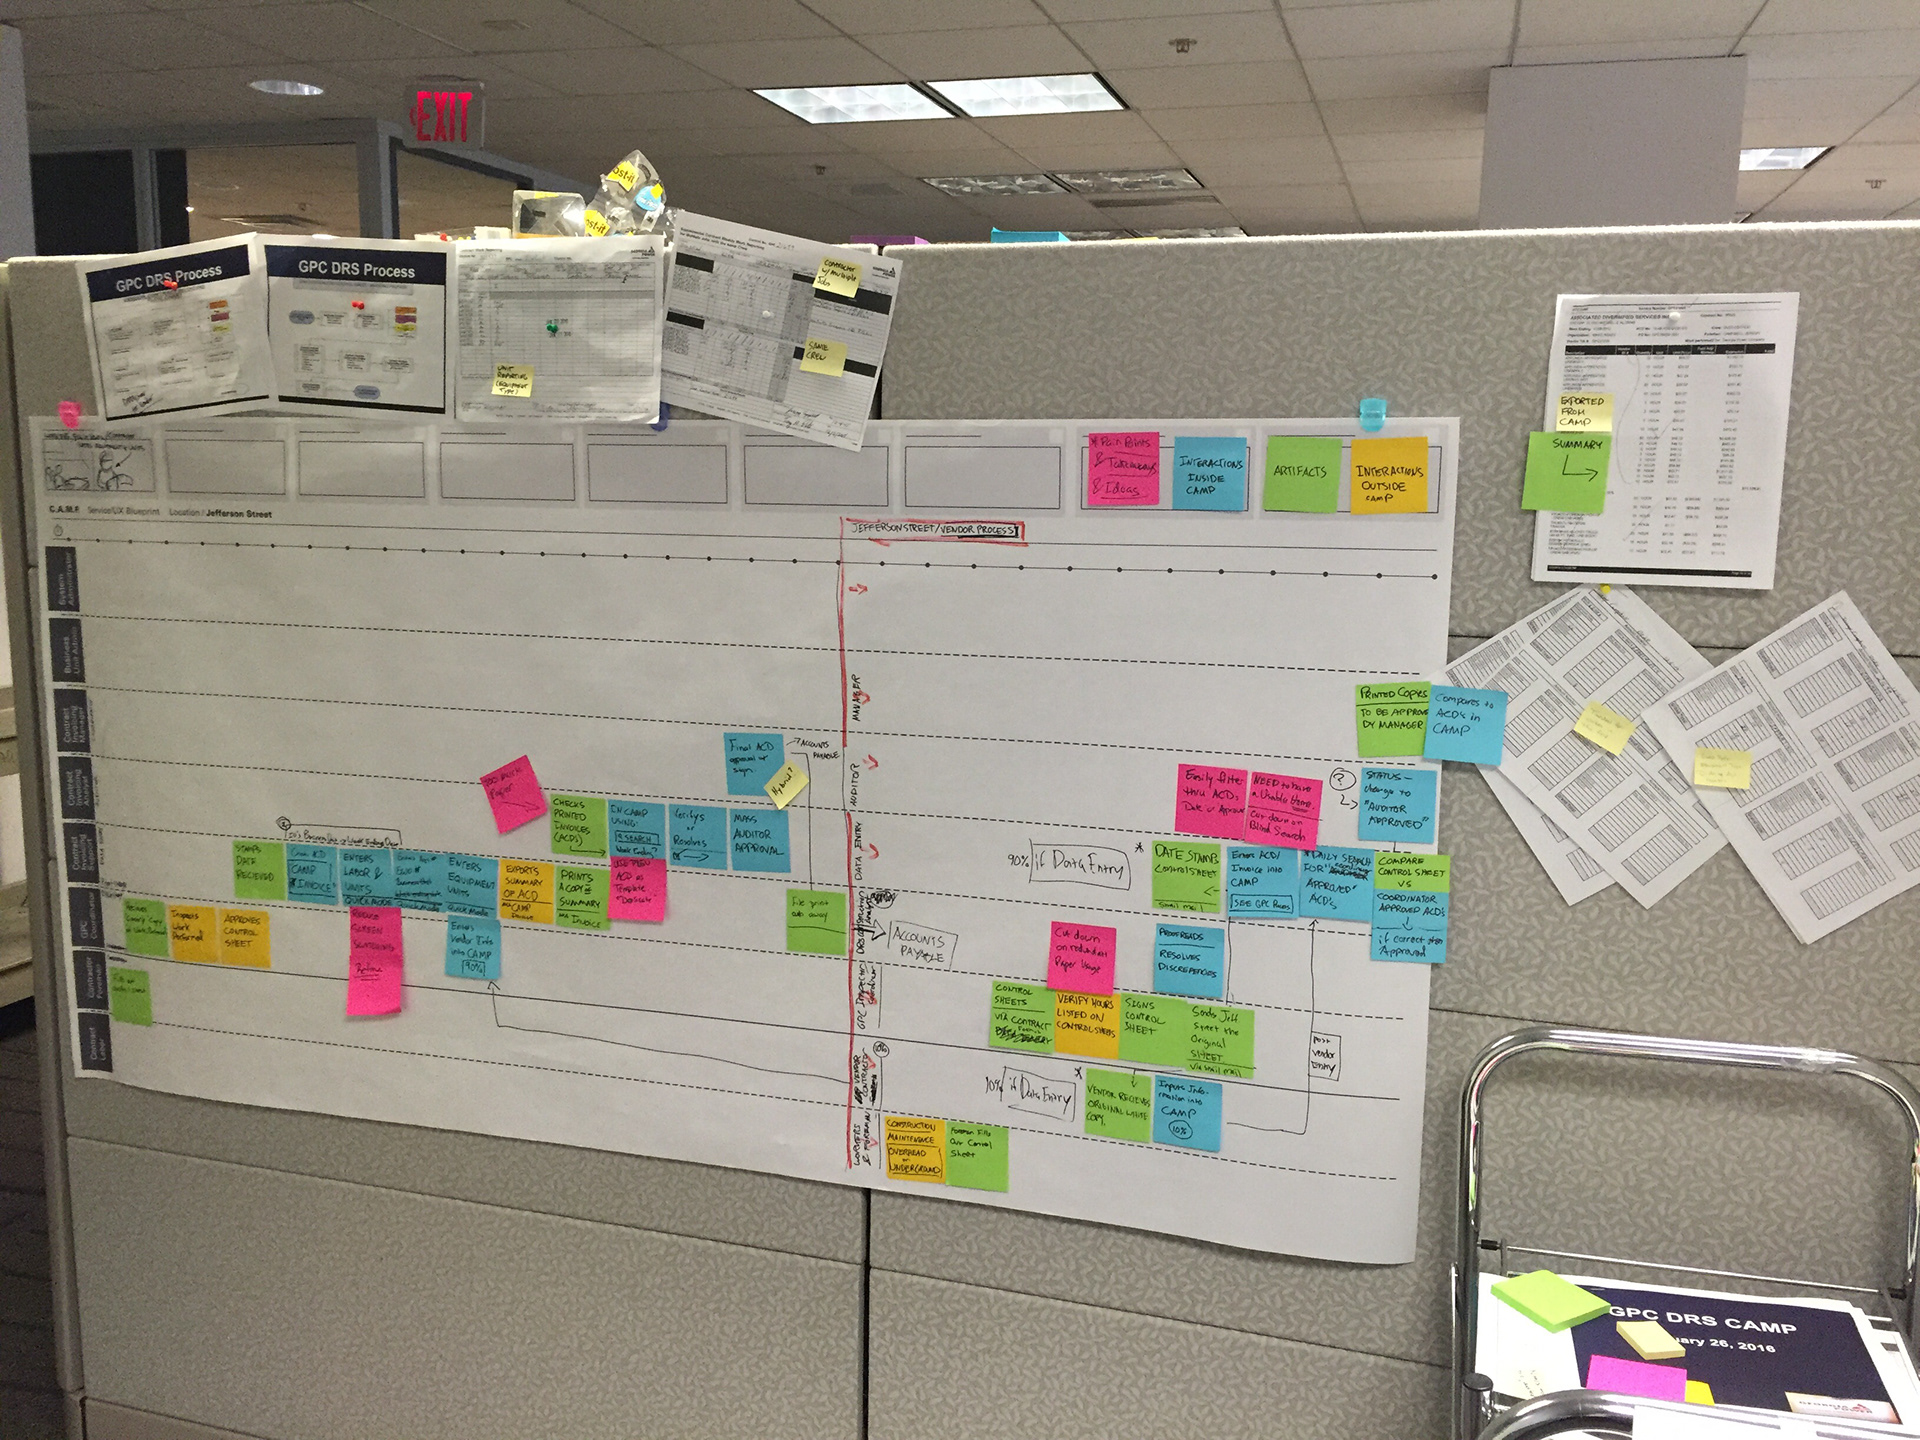 Louis finklestein contract activity management system we took the time to co create extensively and our whole department would get together to see our war corner i love incorporating service methods in the malvernweather Gallery